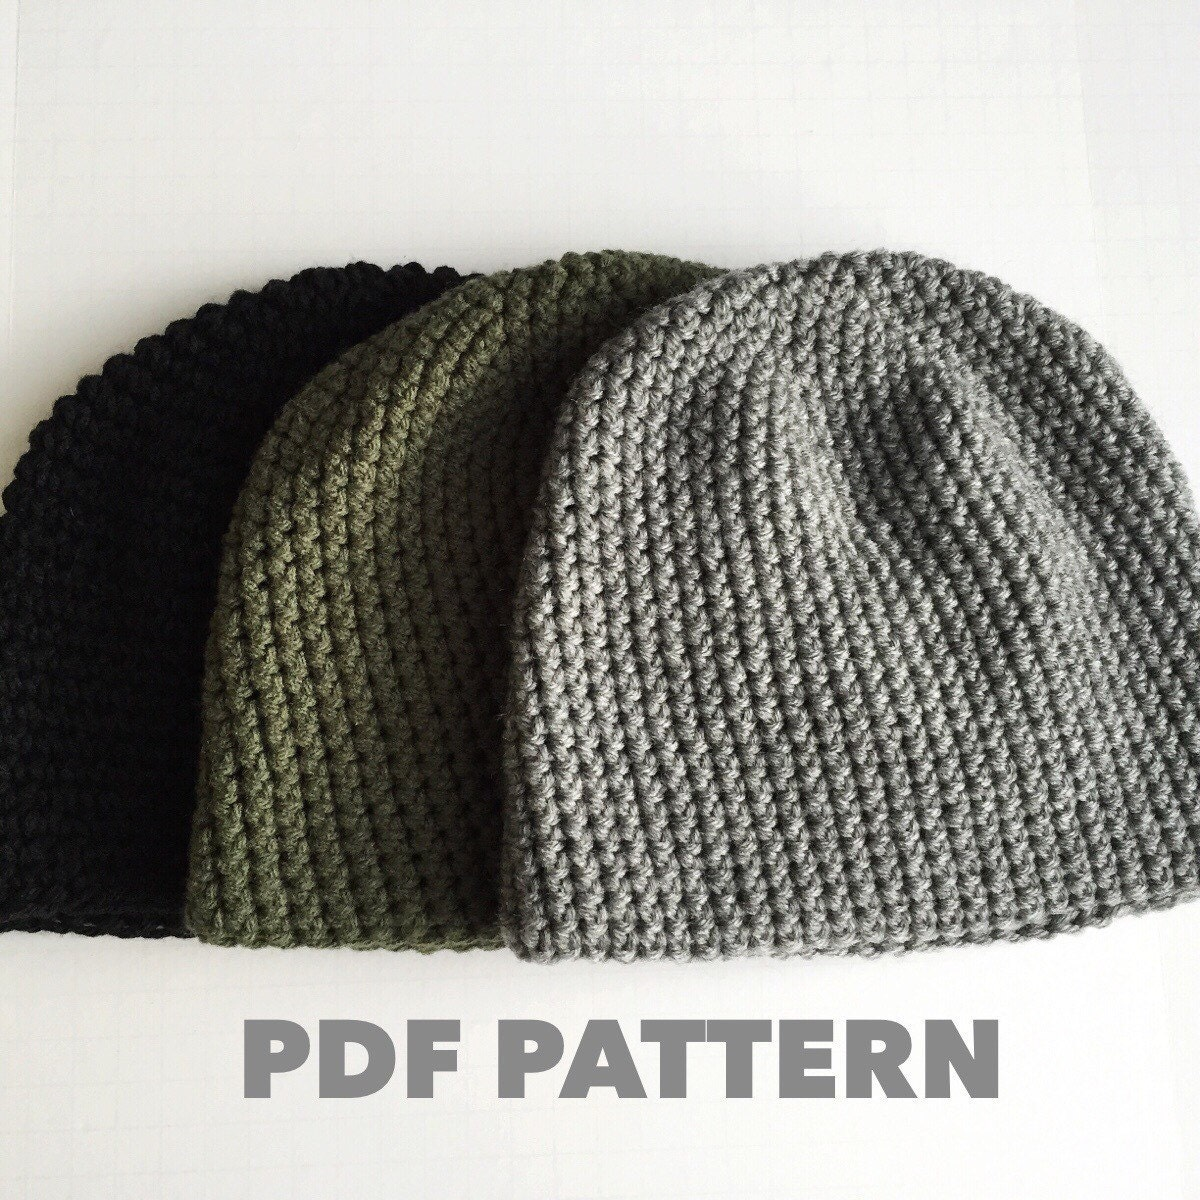 Men's beanie pattern free